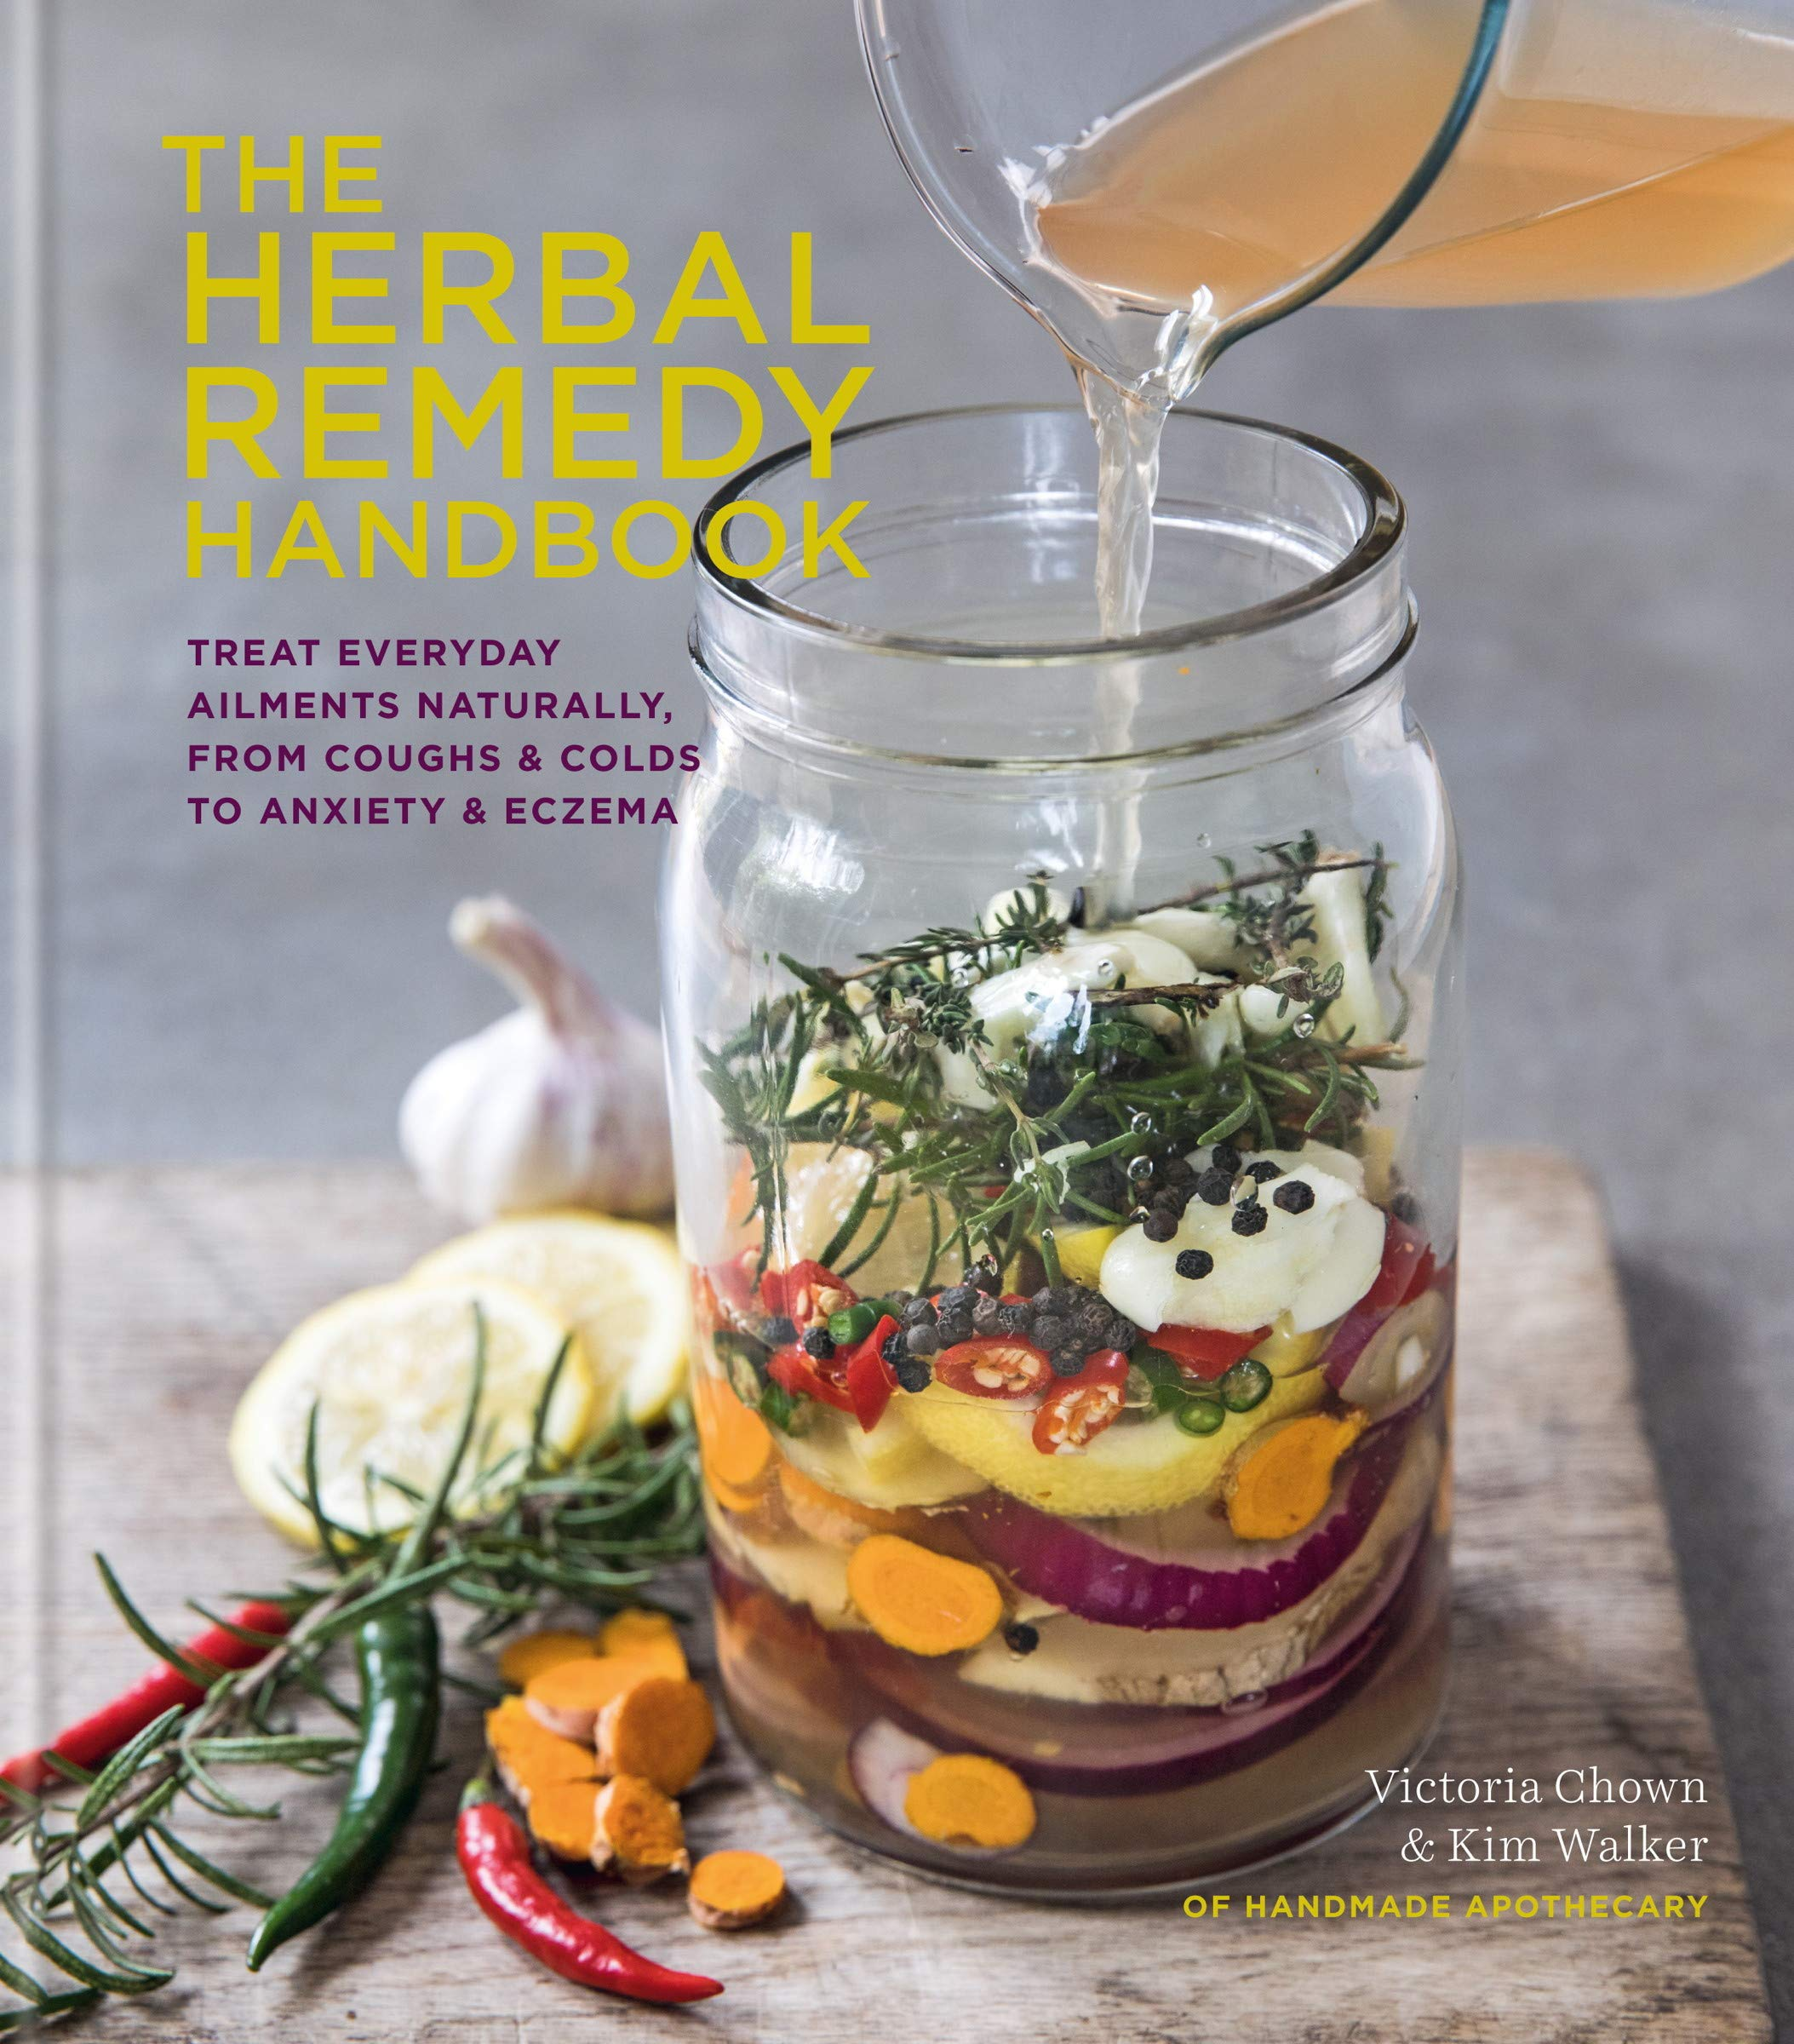 Image OfThe Herbal Remedy Handbook: Treat Everyday Ailments Naturally, From Coughs & Colds To Anxiety & Eczema (English Edition)